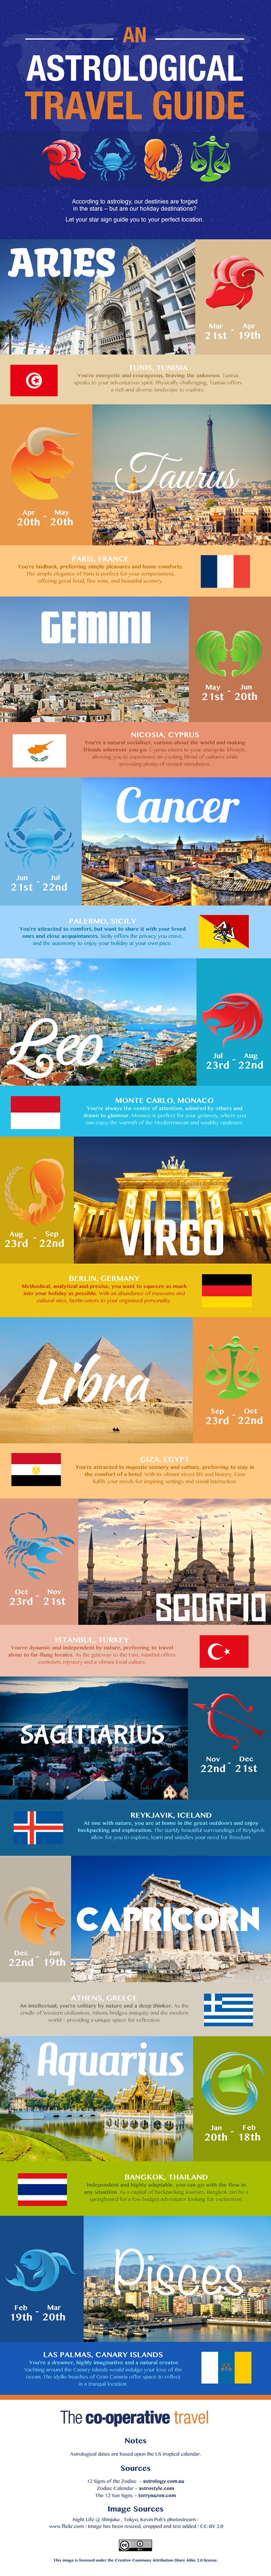 An-Astrological-Travel-Guide-mh